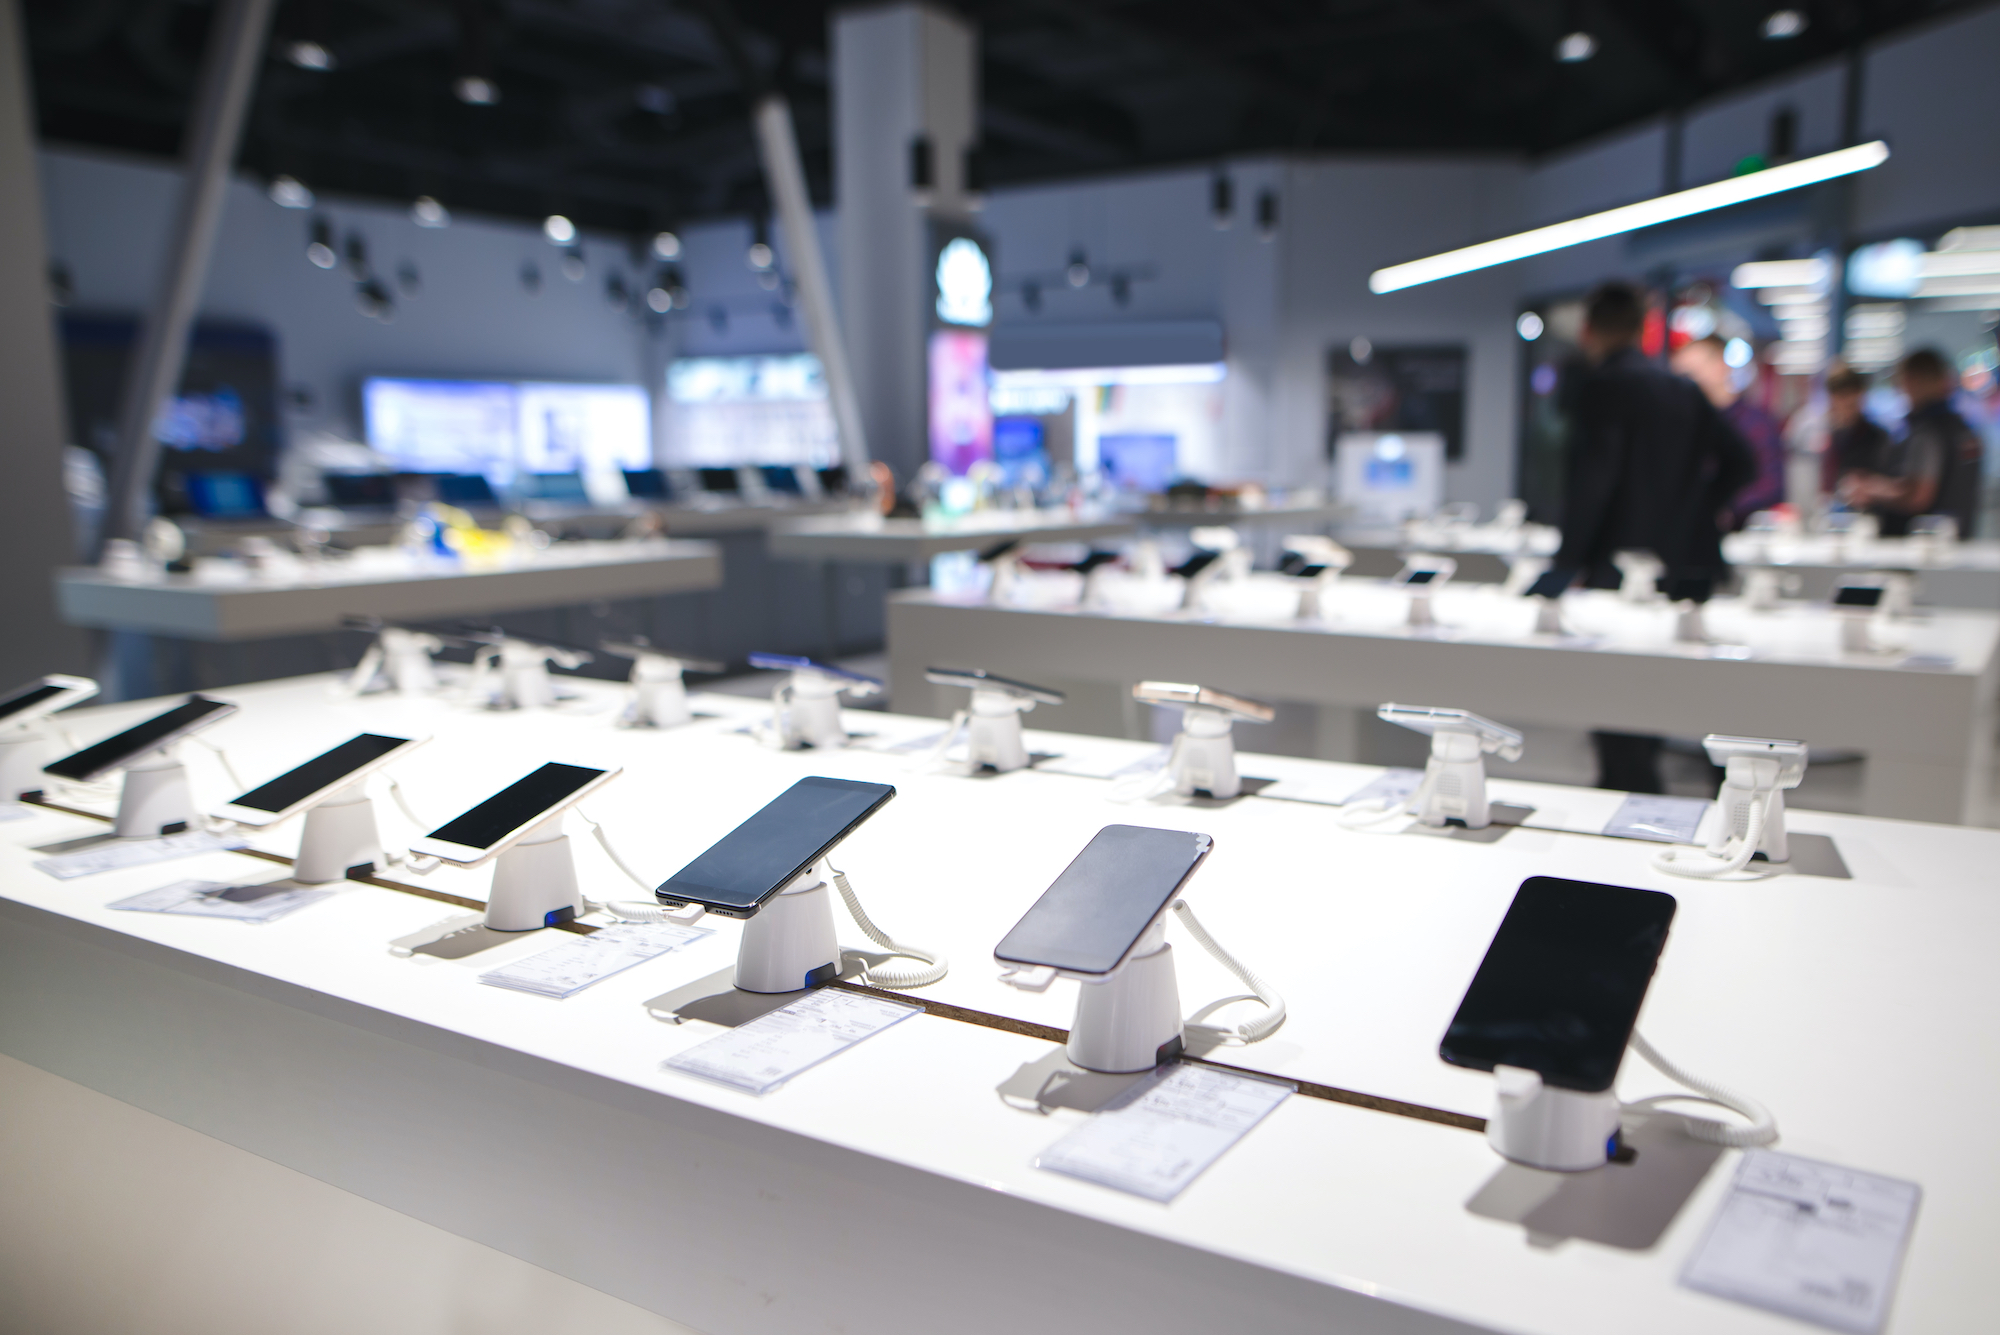 Mobile device store